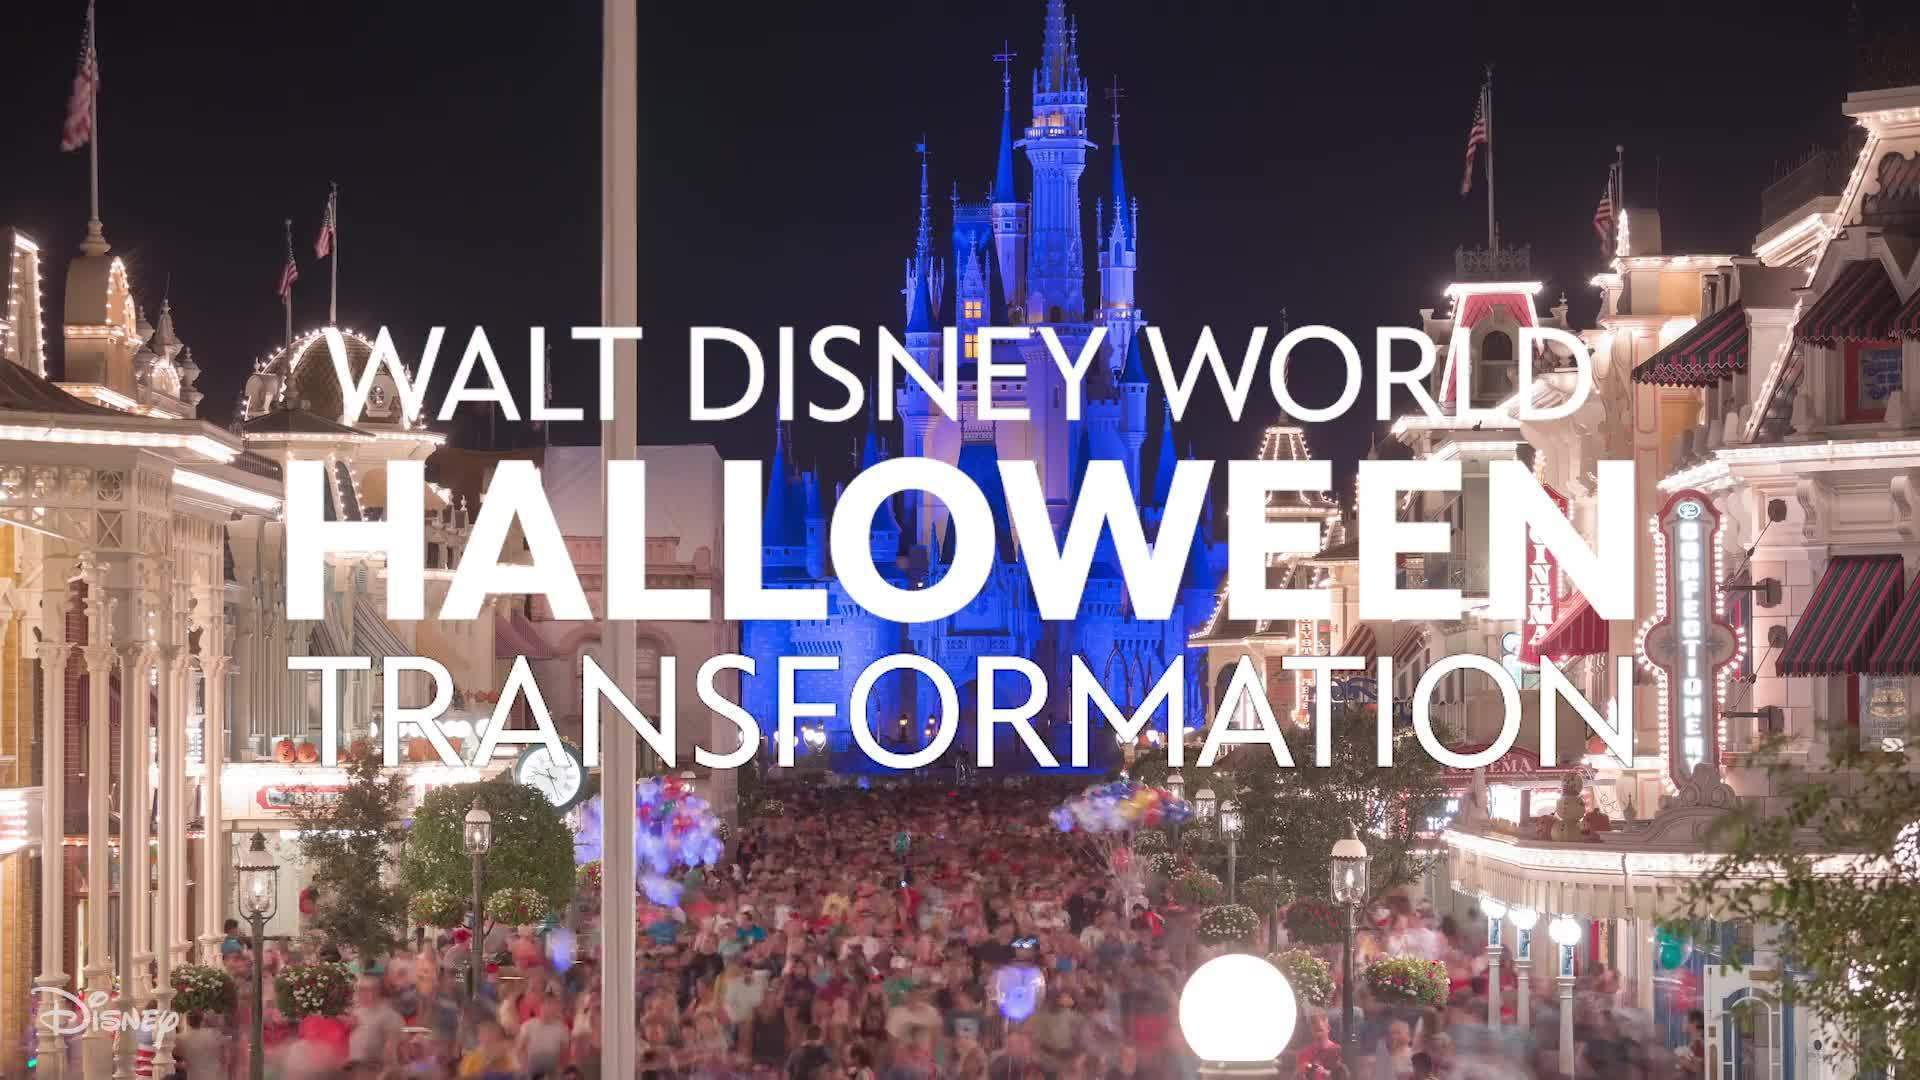 Walt Disney World Halloween Transformation